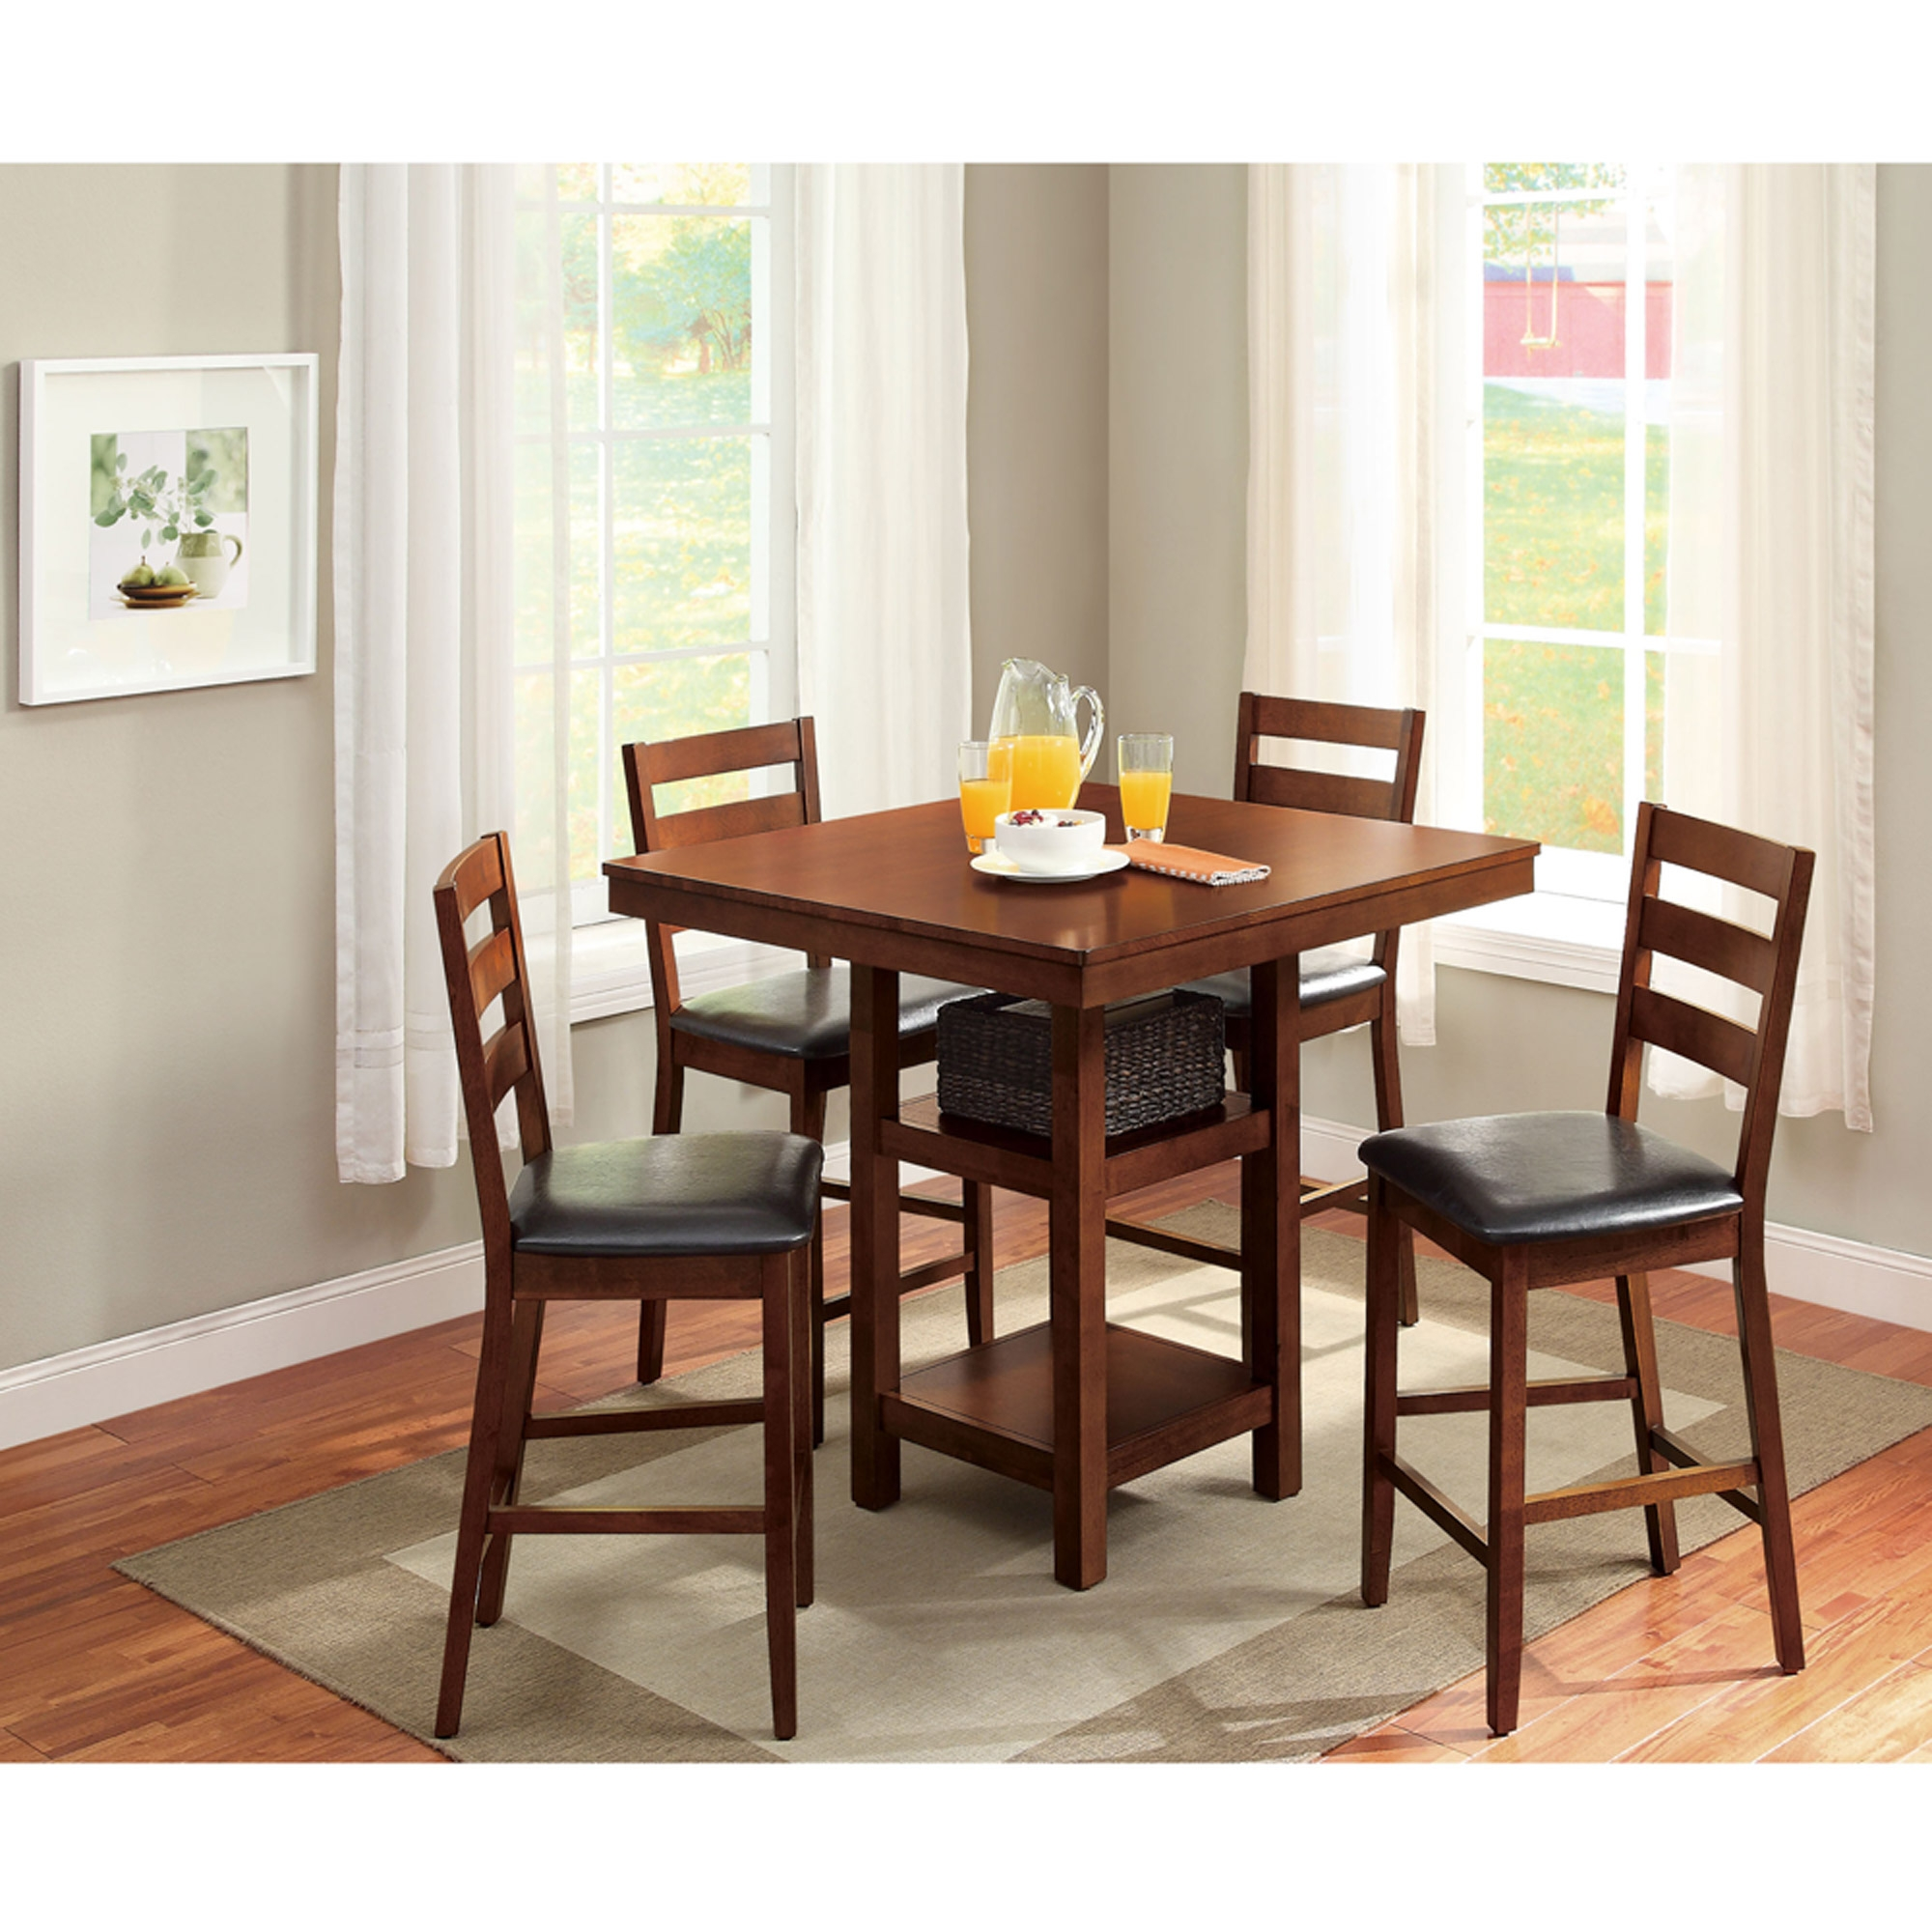 better homes gardens dalton park 5 piece counter height dining set